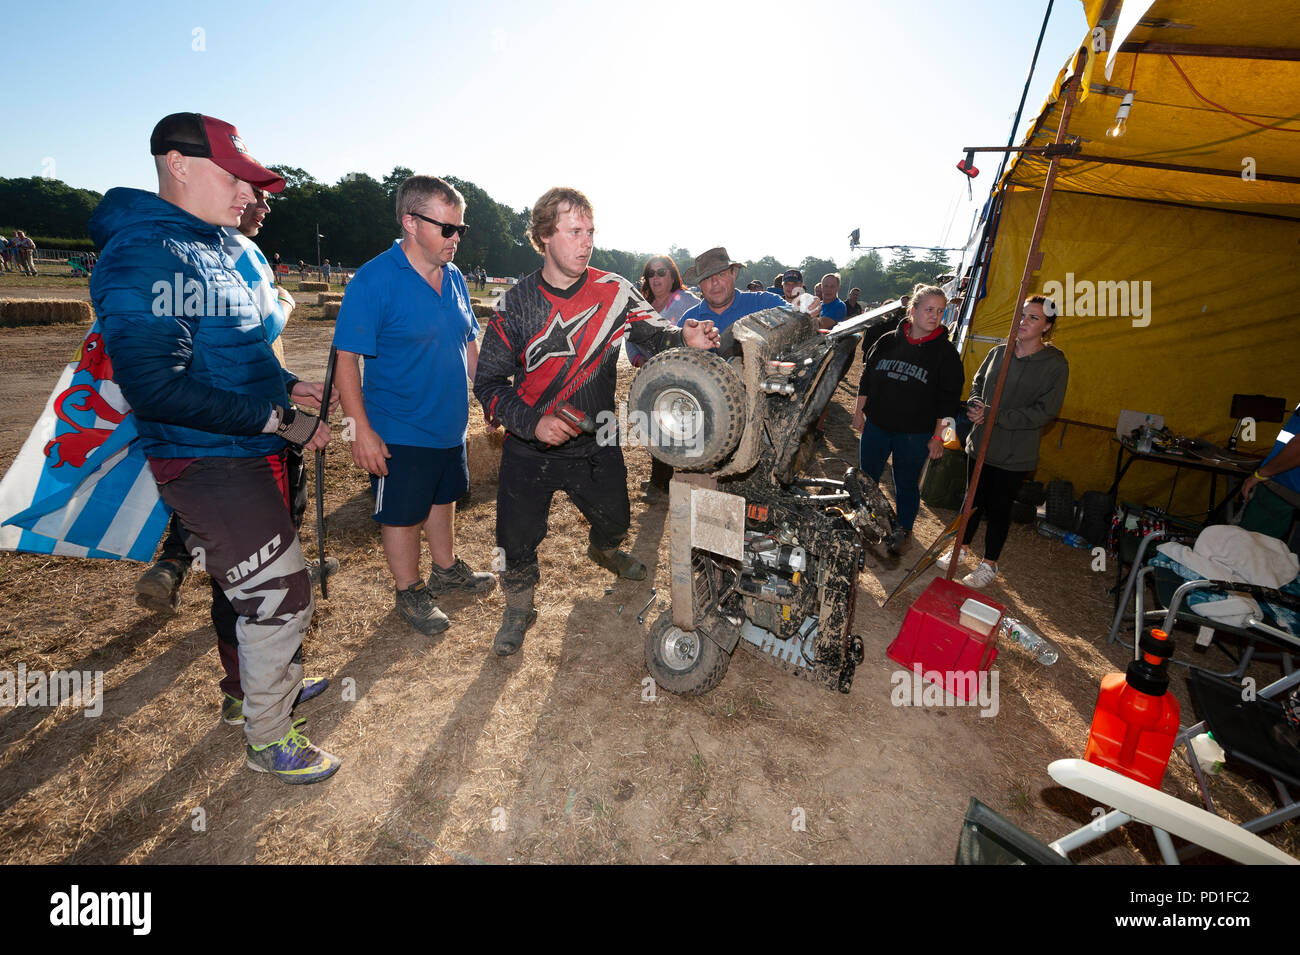 The 12 hour endurance lawnmower race, organised by the British Lawn Mower Racing Association, started at 8pm on Saturday and teams from around the world raced through the night to the finish line at 8am Sunday morning. 5th August 2018. Billingshurst, West Sussex. The 12 hour enduarance lawnmower race, organised by the British Lawn Mower Racing Association, started at 8pm on Saturday and teams from around the world raced through the night to the finish line at 8am Sunday morning. At 11 hours and 30 minutes, Northerners Kick Grass (pictured) were in the lead and set to win their 6th consecu - Stock Image